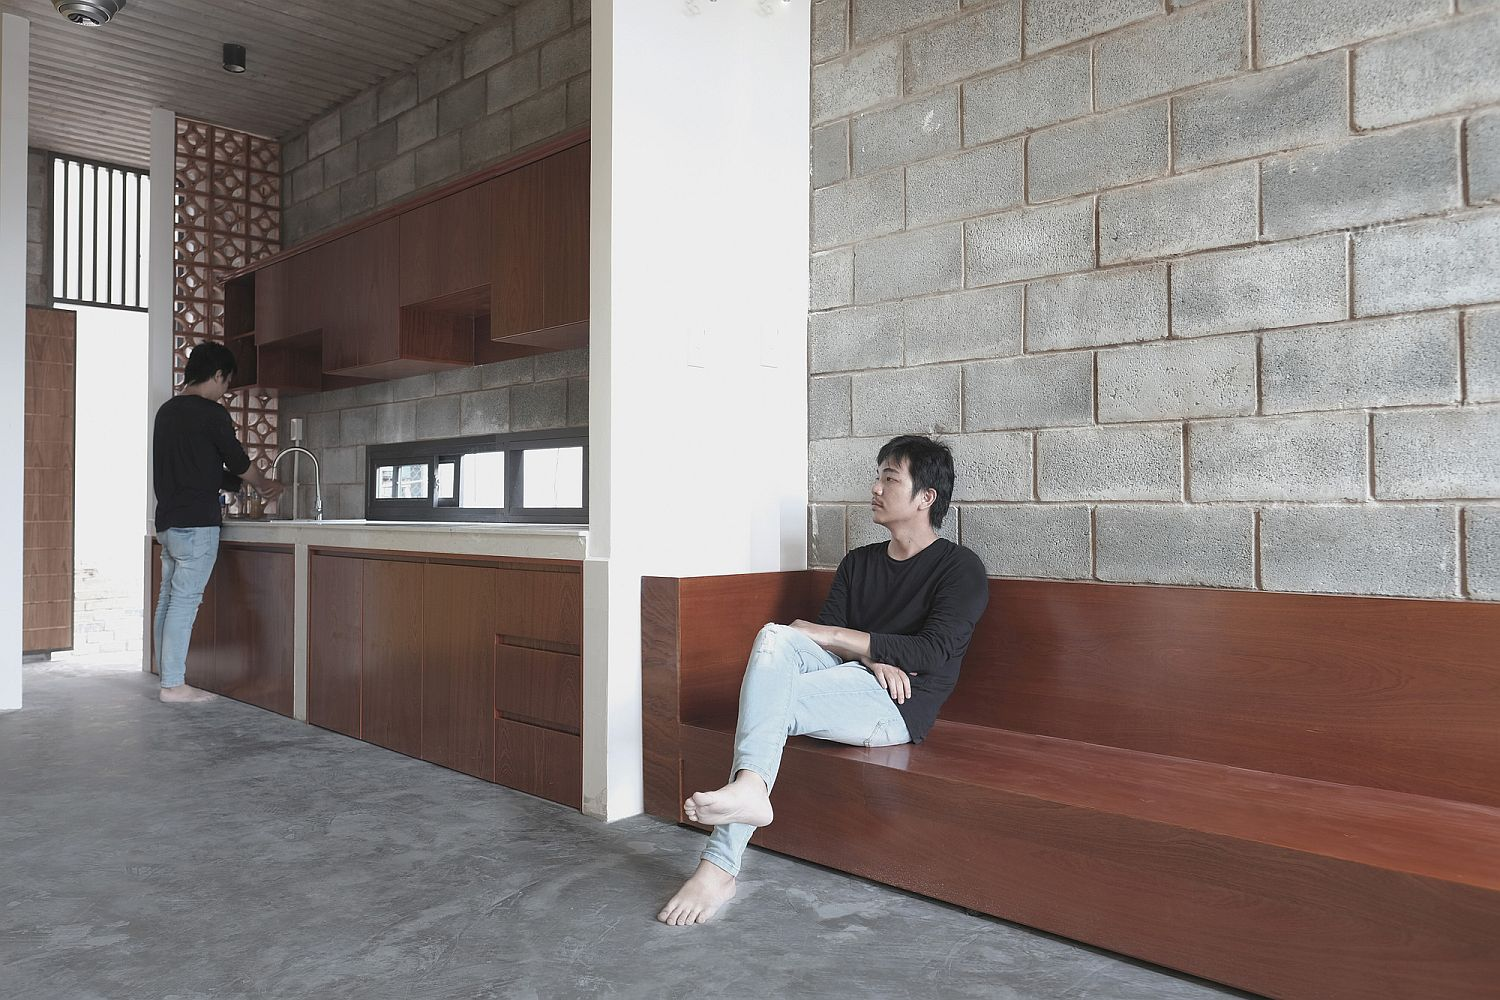 Creative interior with wooden kitchen station and exposed concrete backdrop